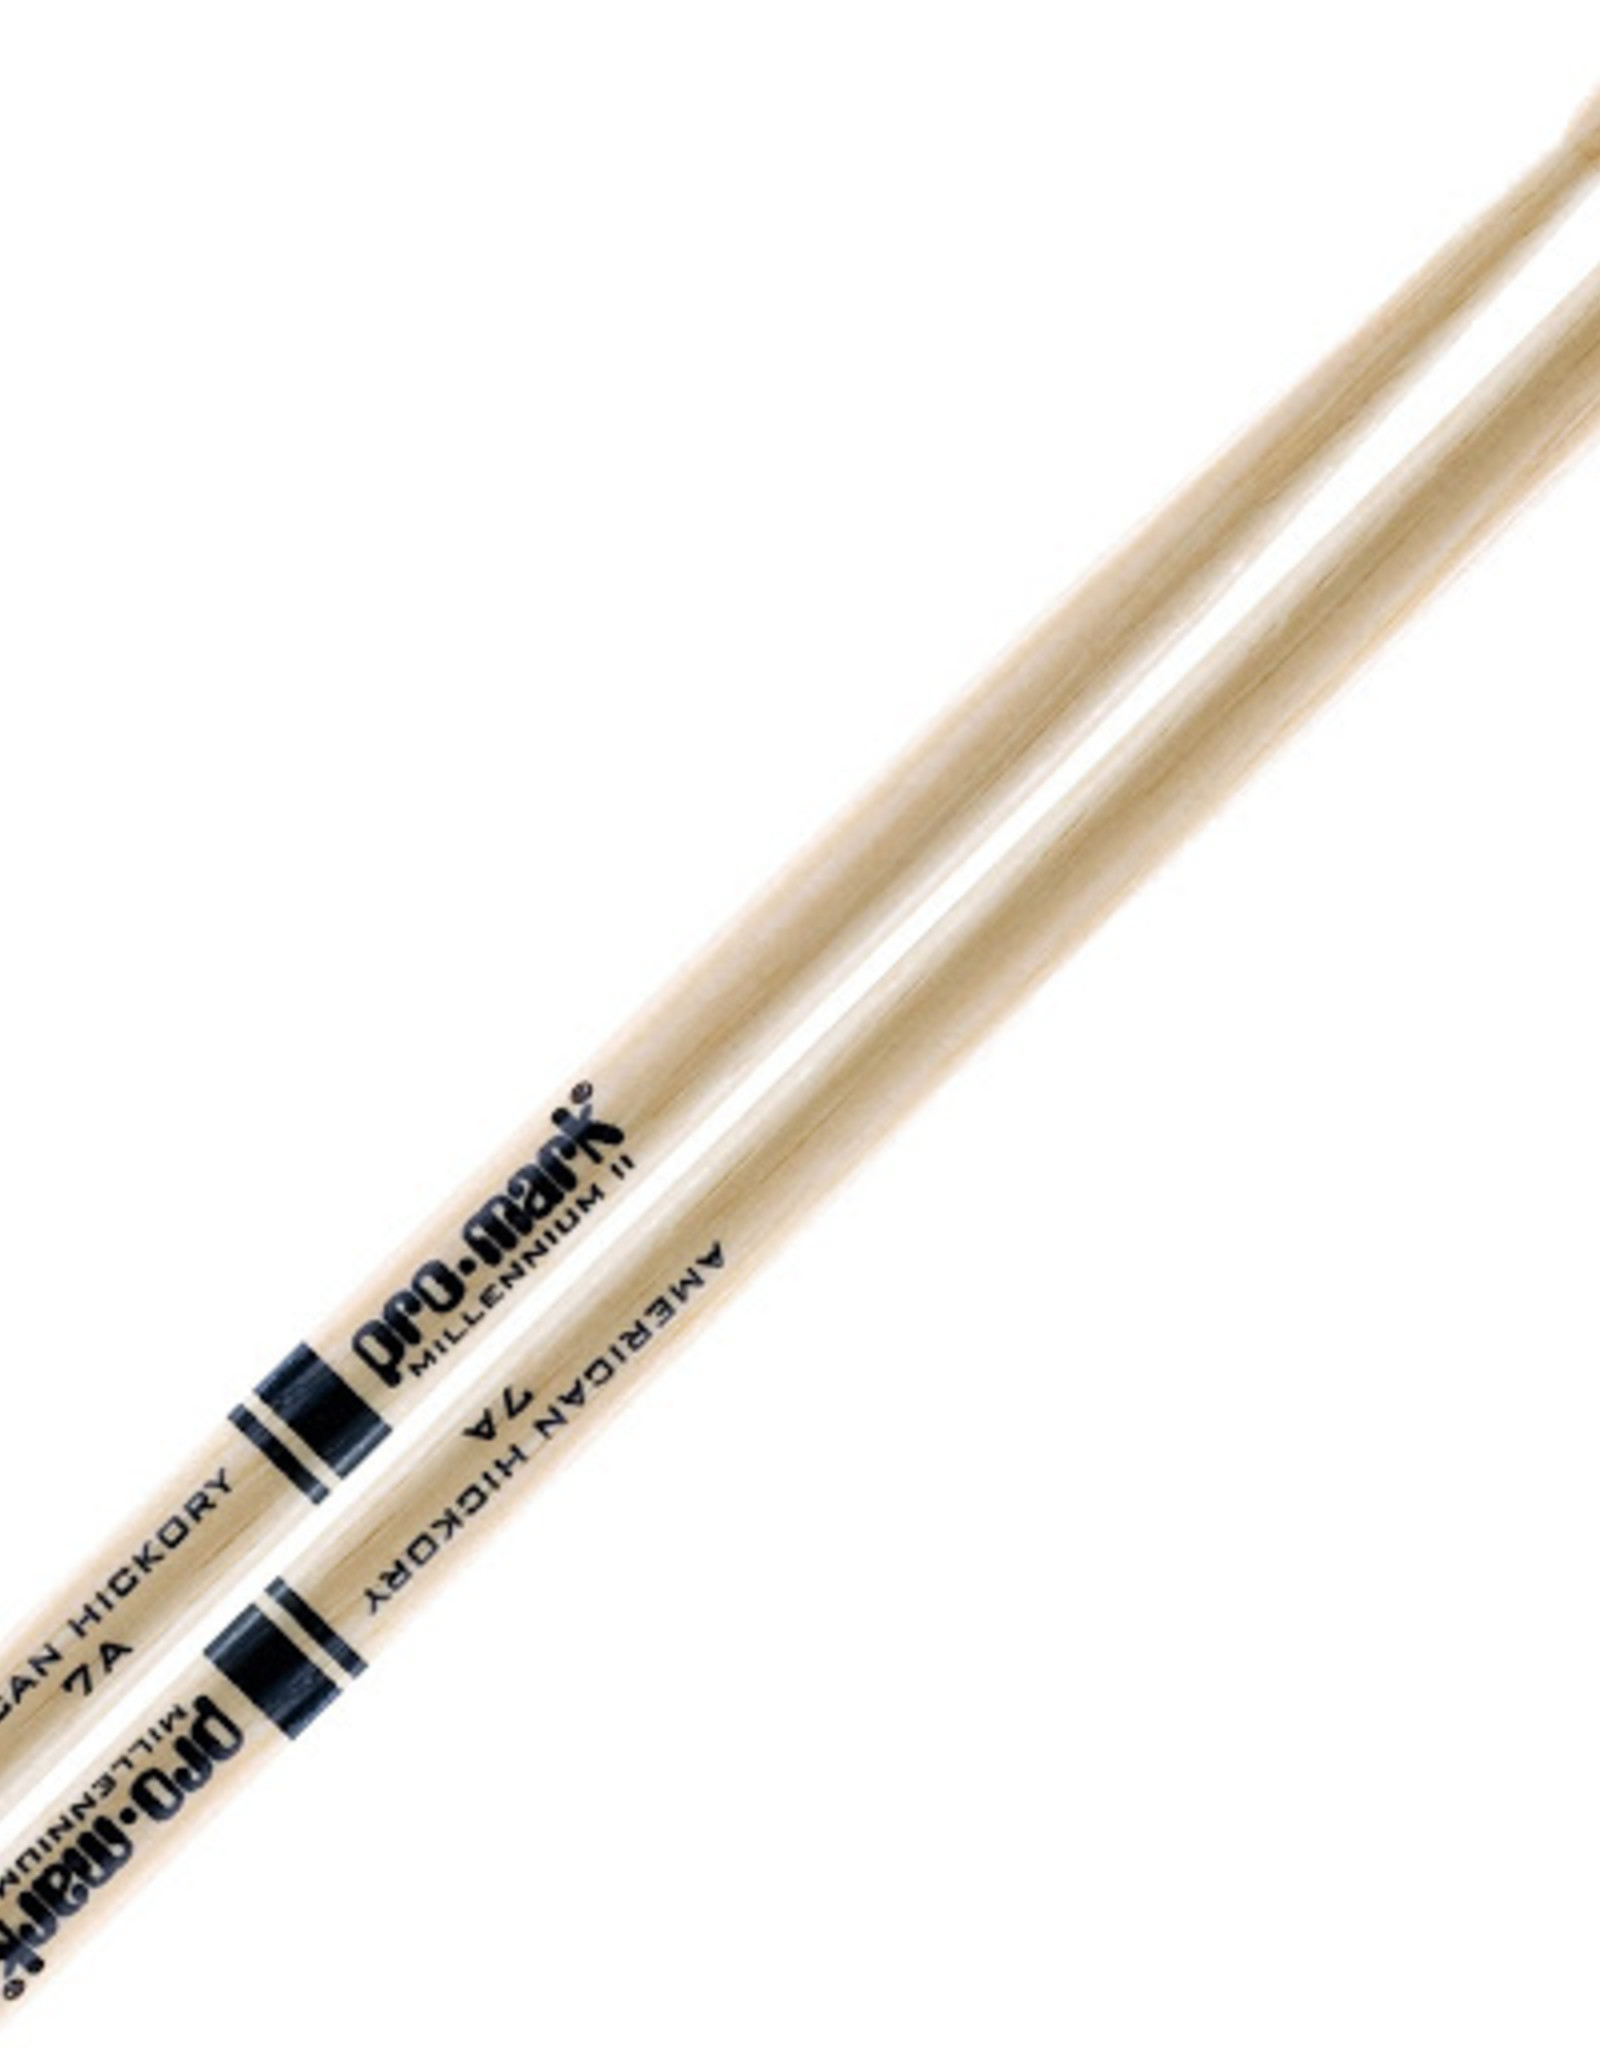 Promark Promark 7A American Hickory Wood Tip Drumsticks